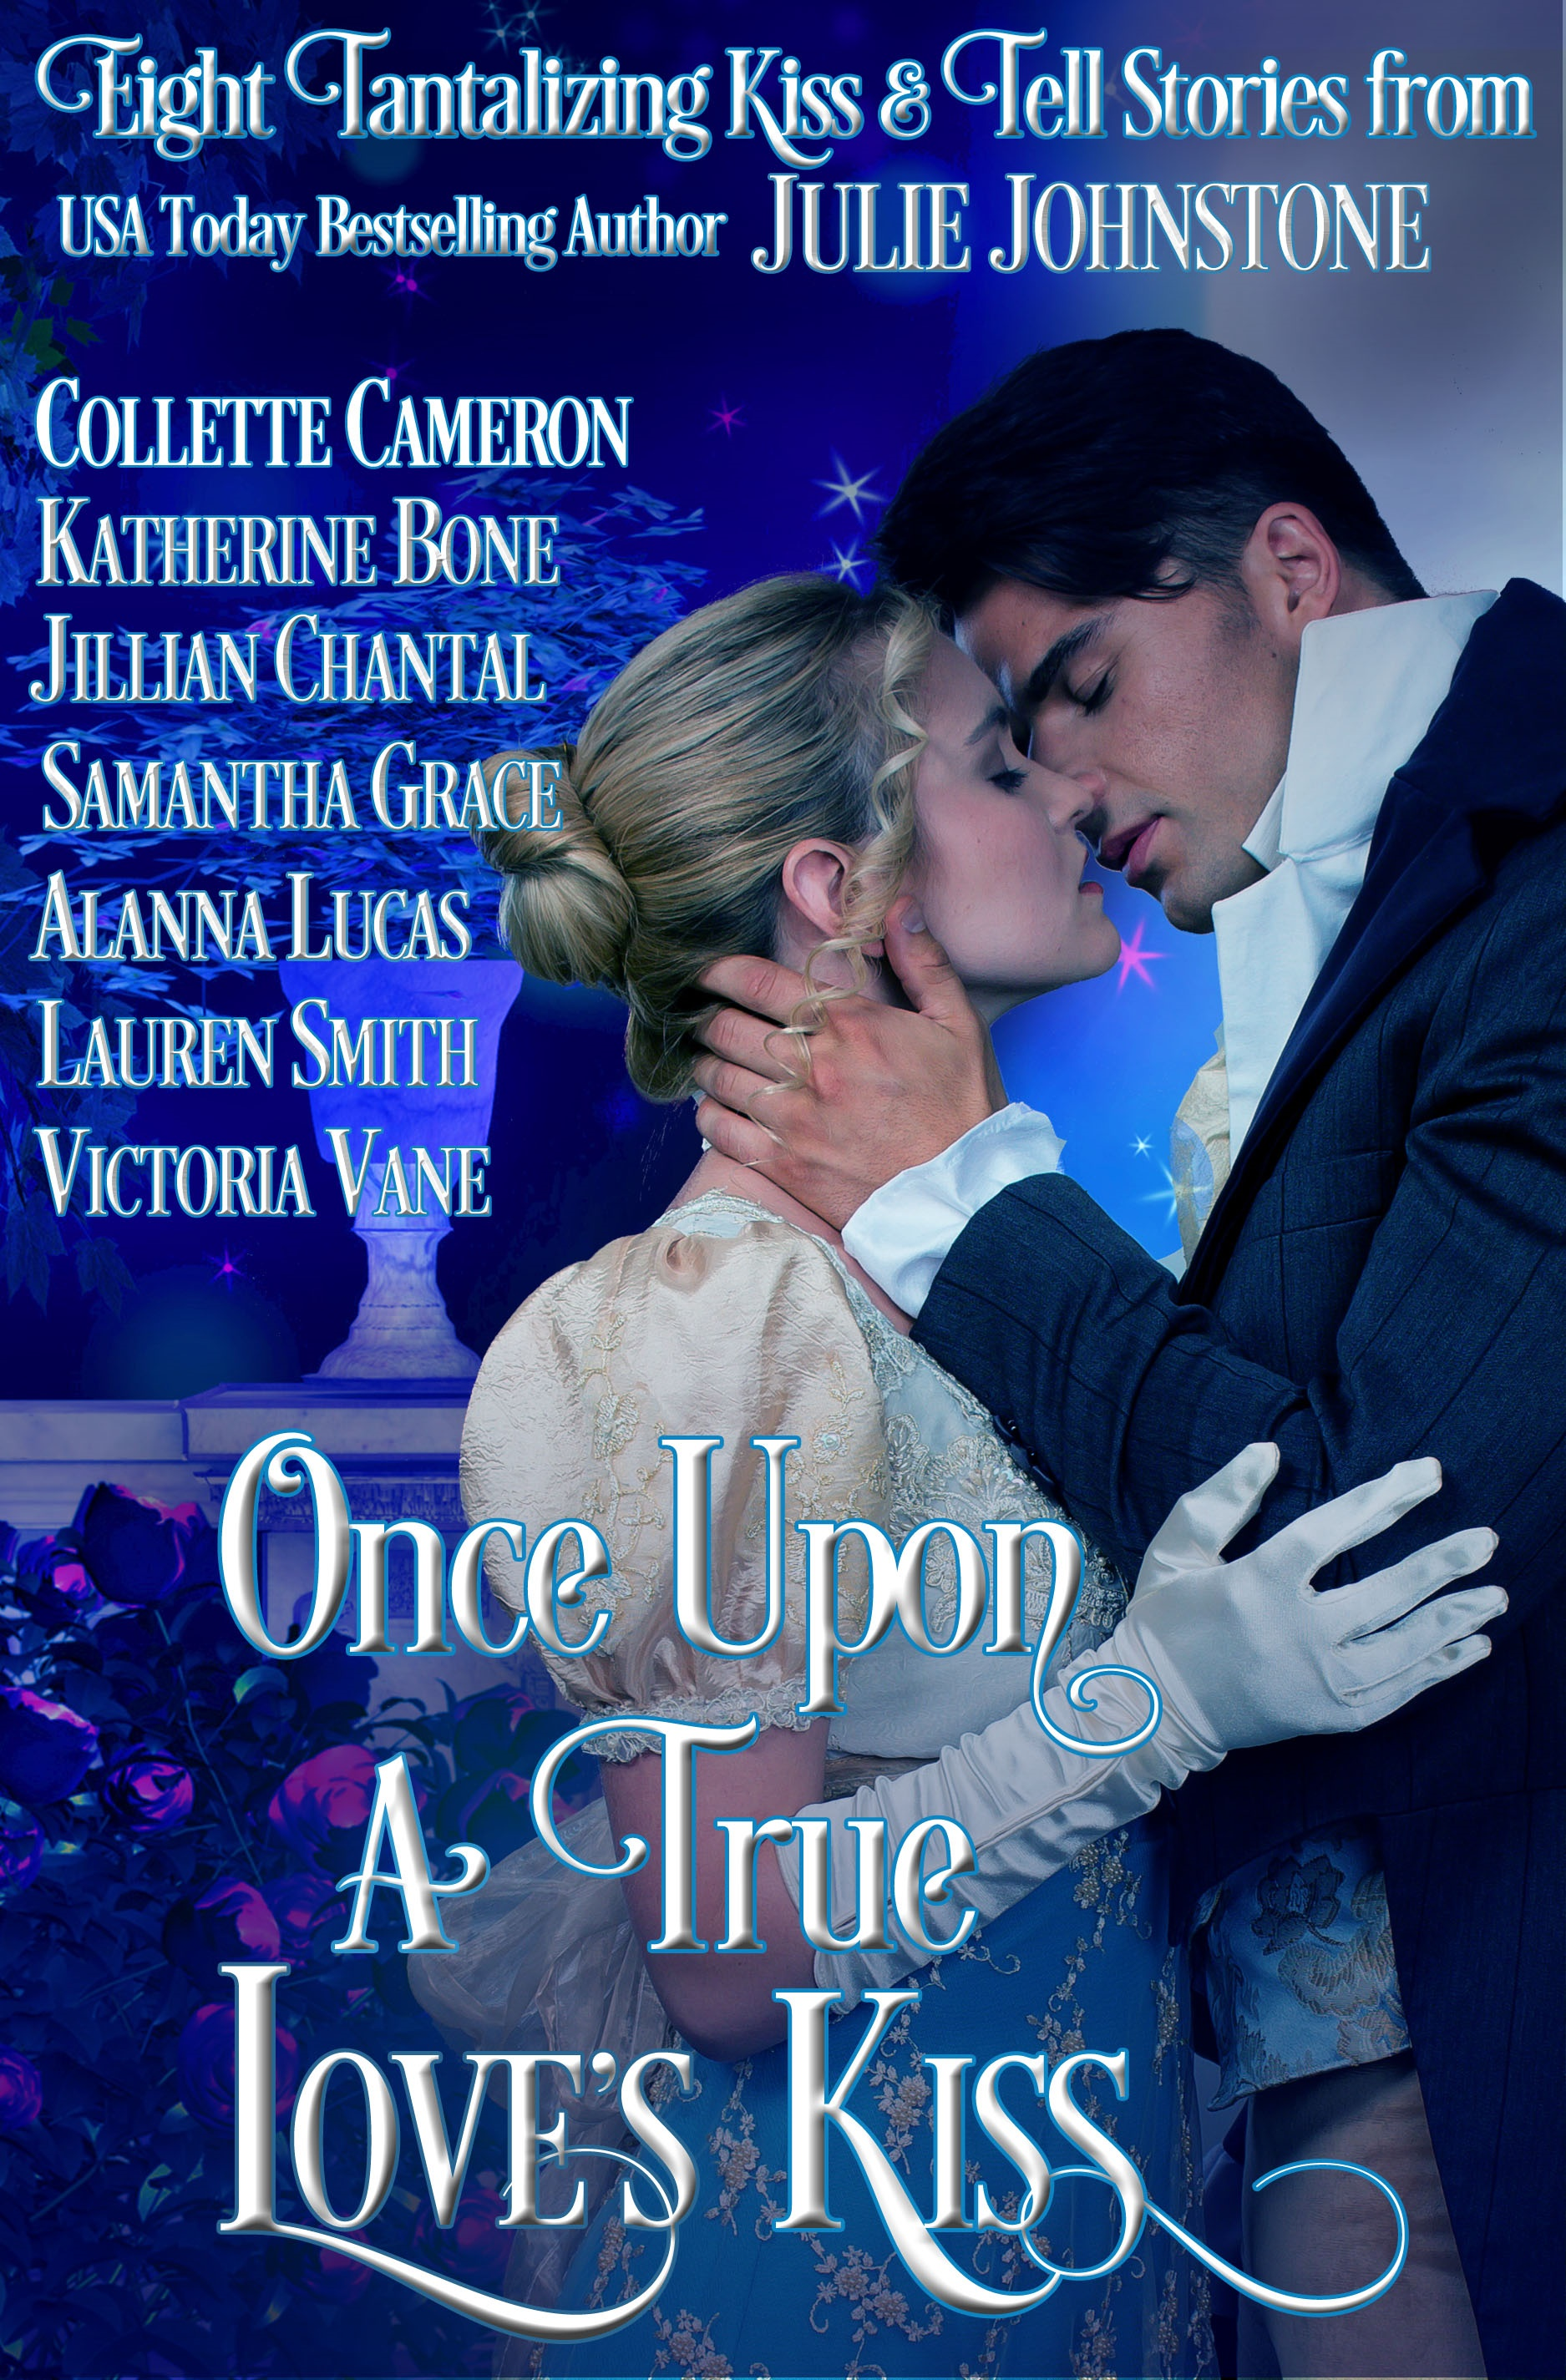 Once Upon A True Love's Kiss